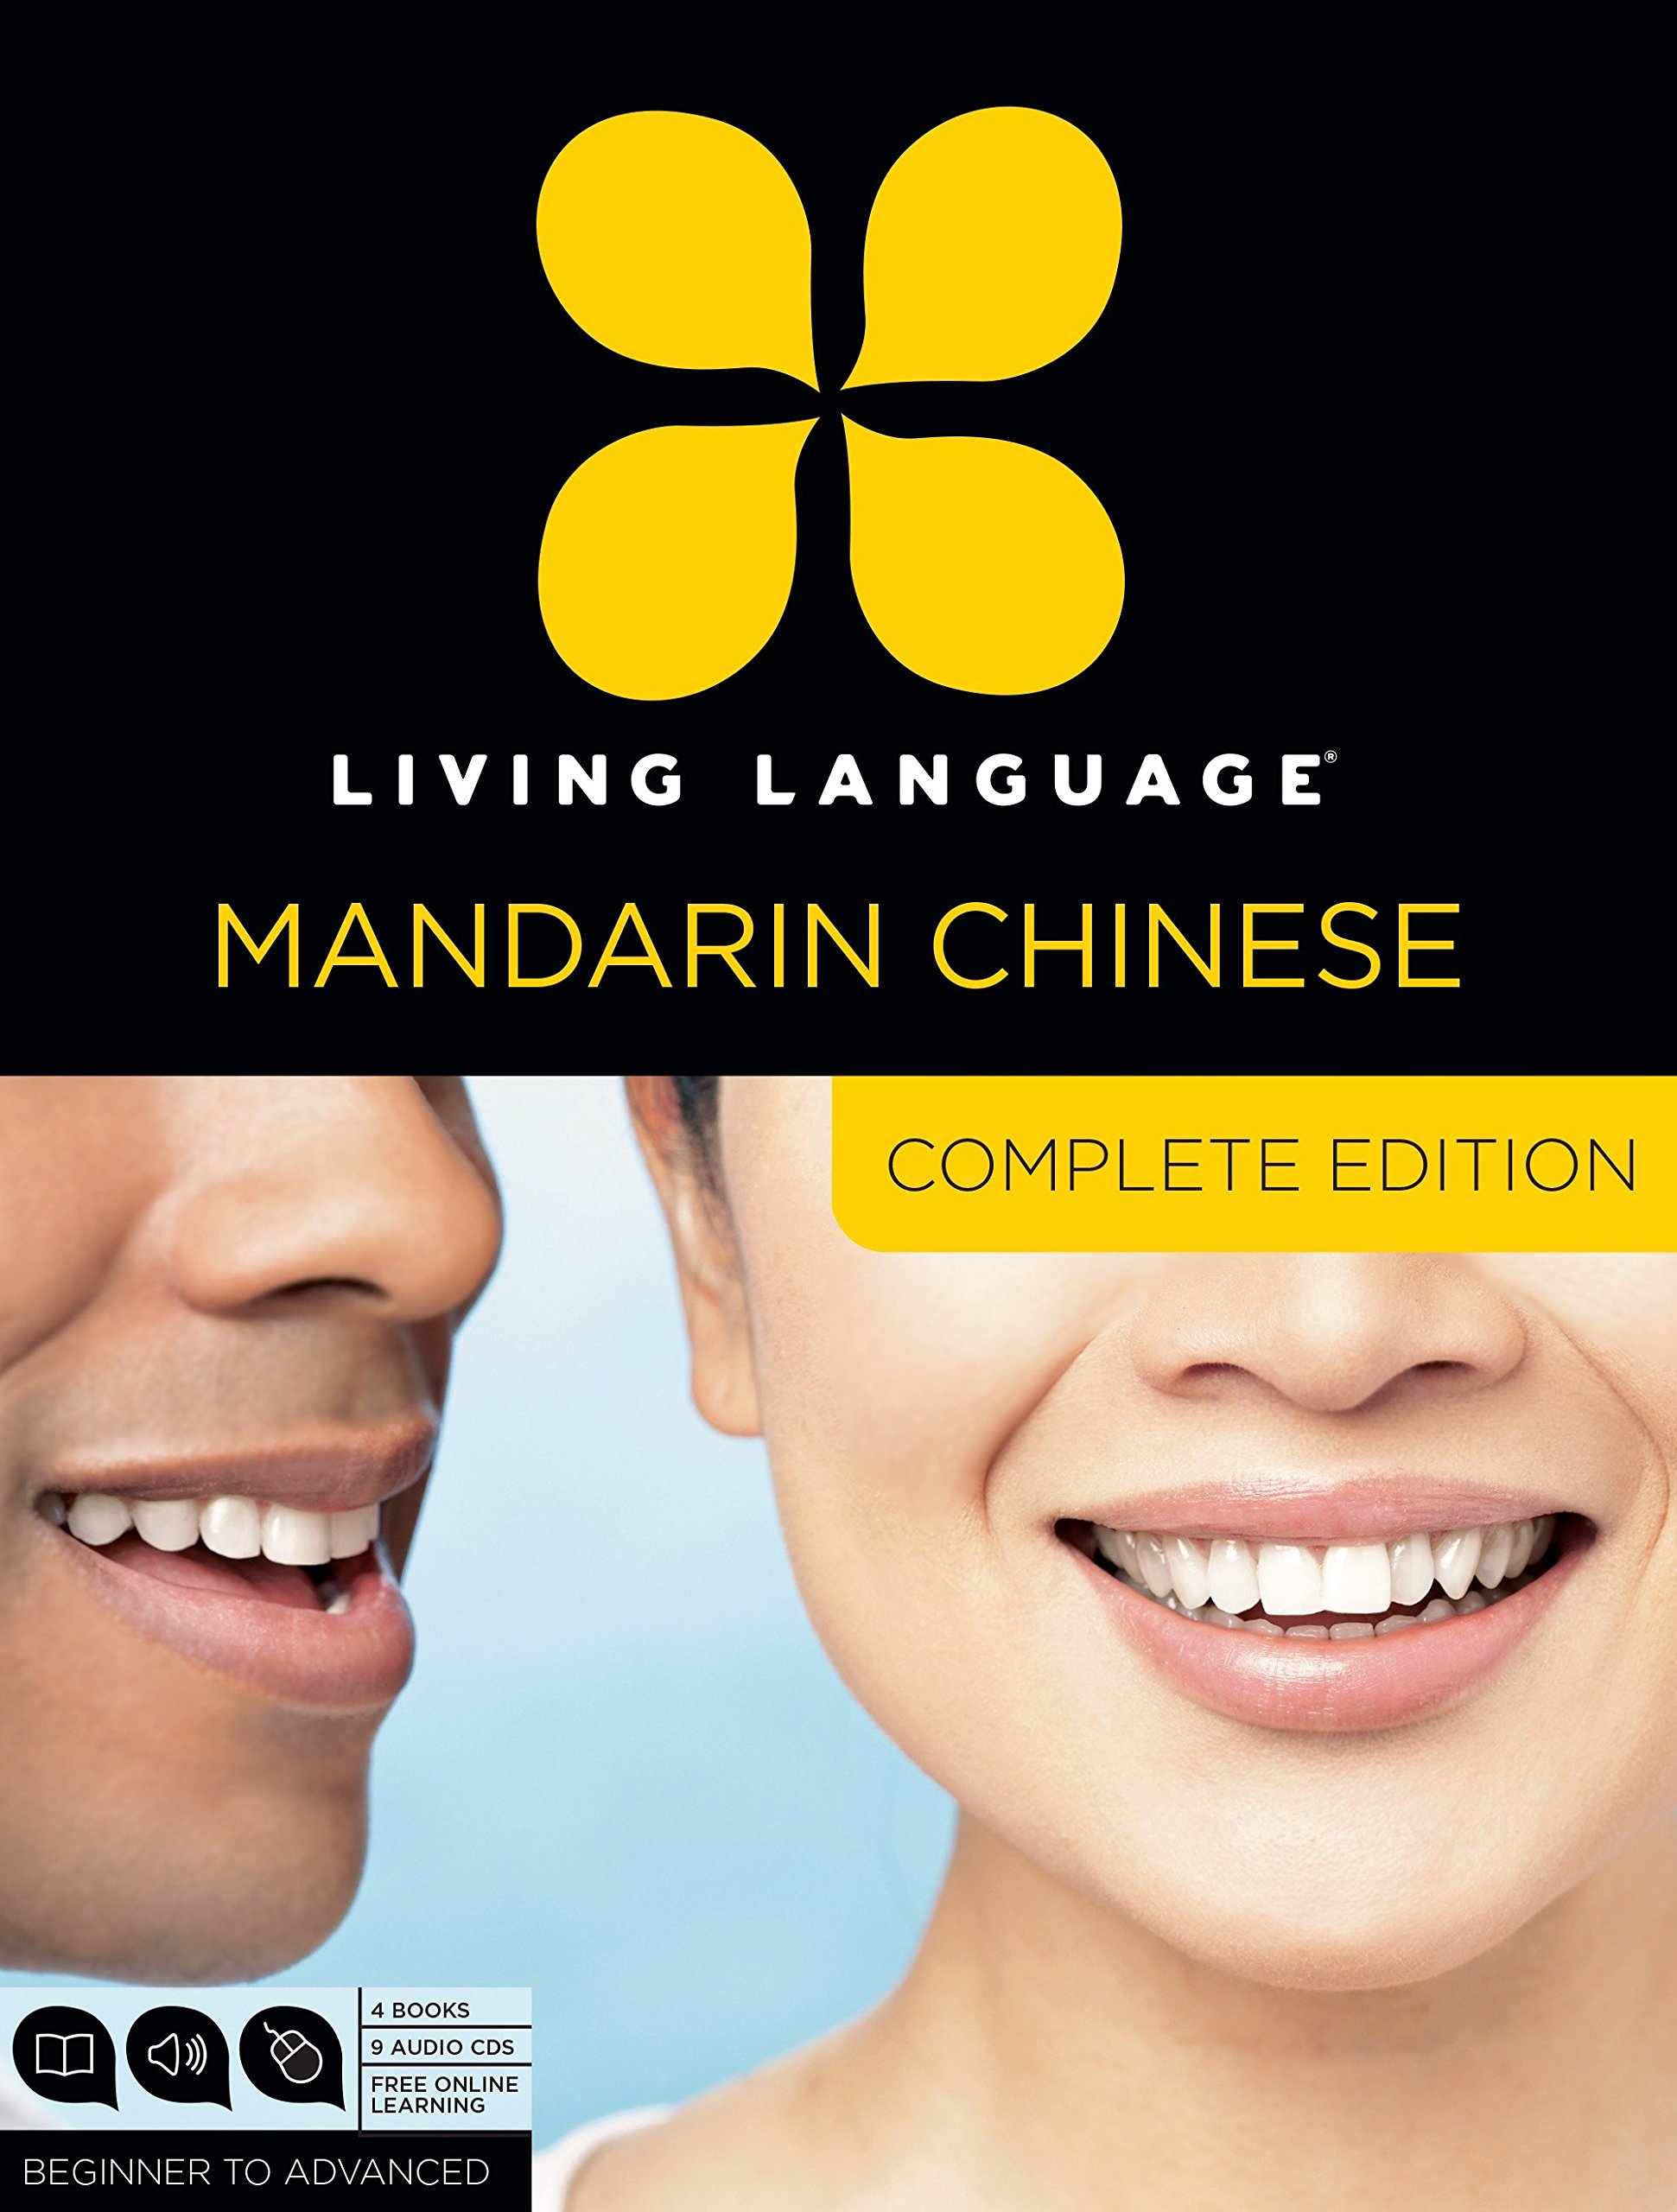 Living Language Mandarin Chinese, Complete Edition: Beginner through advanced course, including 3 coursebooks, 9 audio CDs, Chinese character guide, and free online learning by Living Language